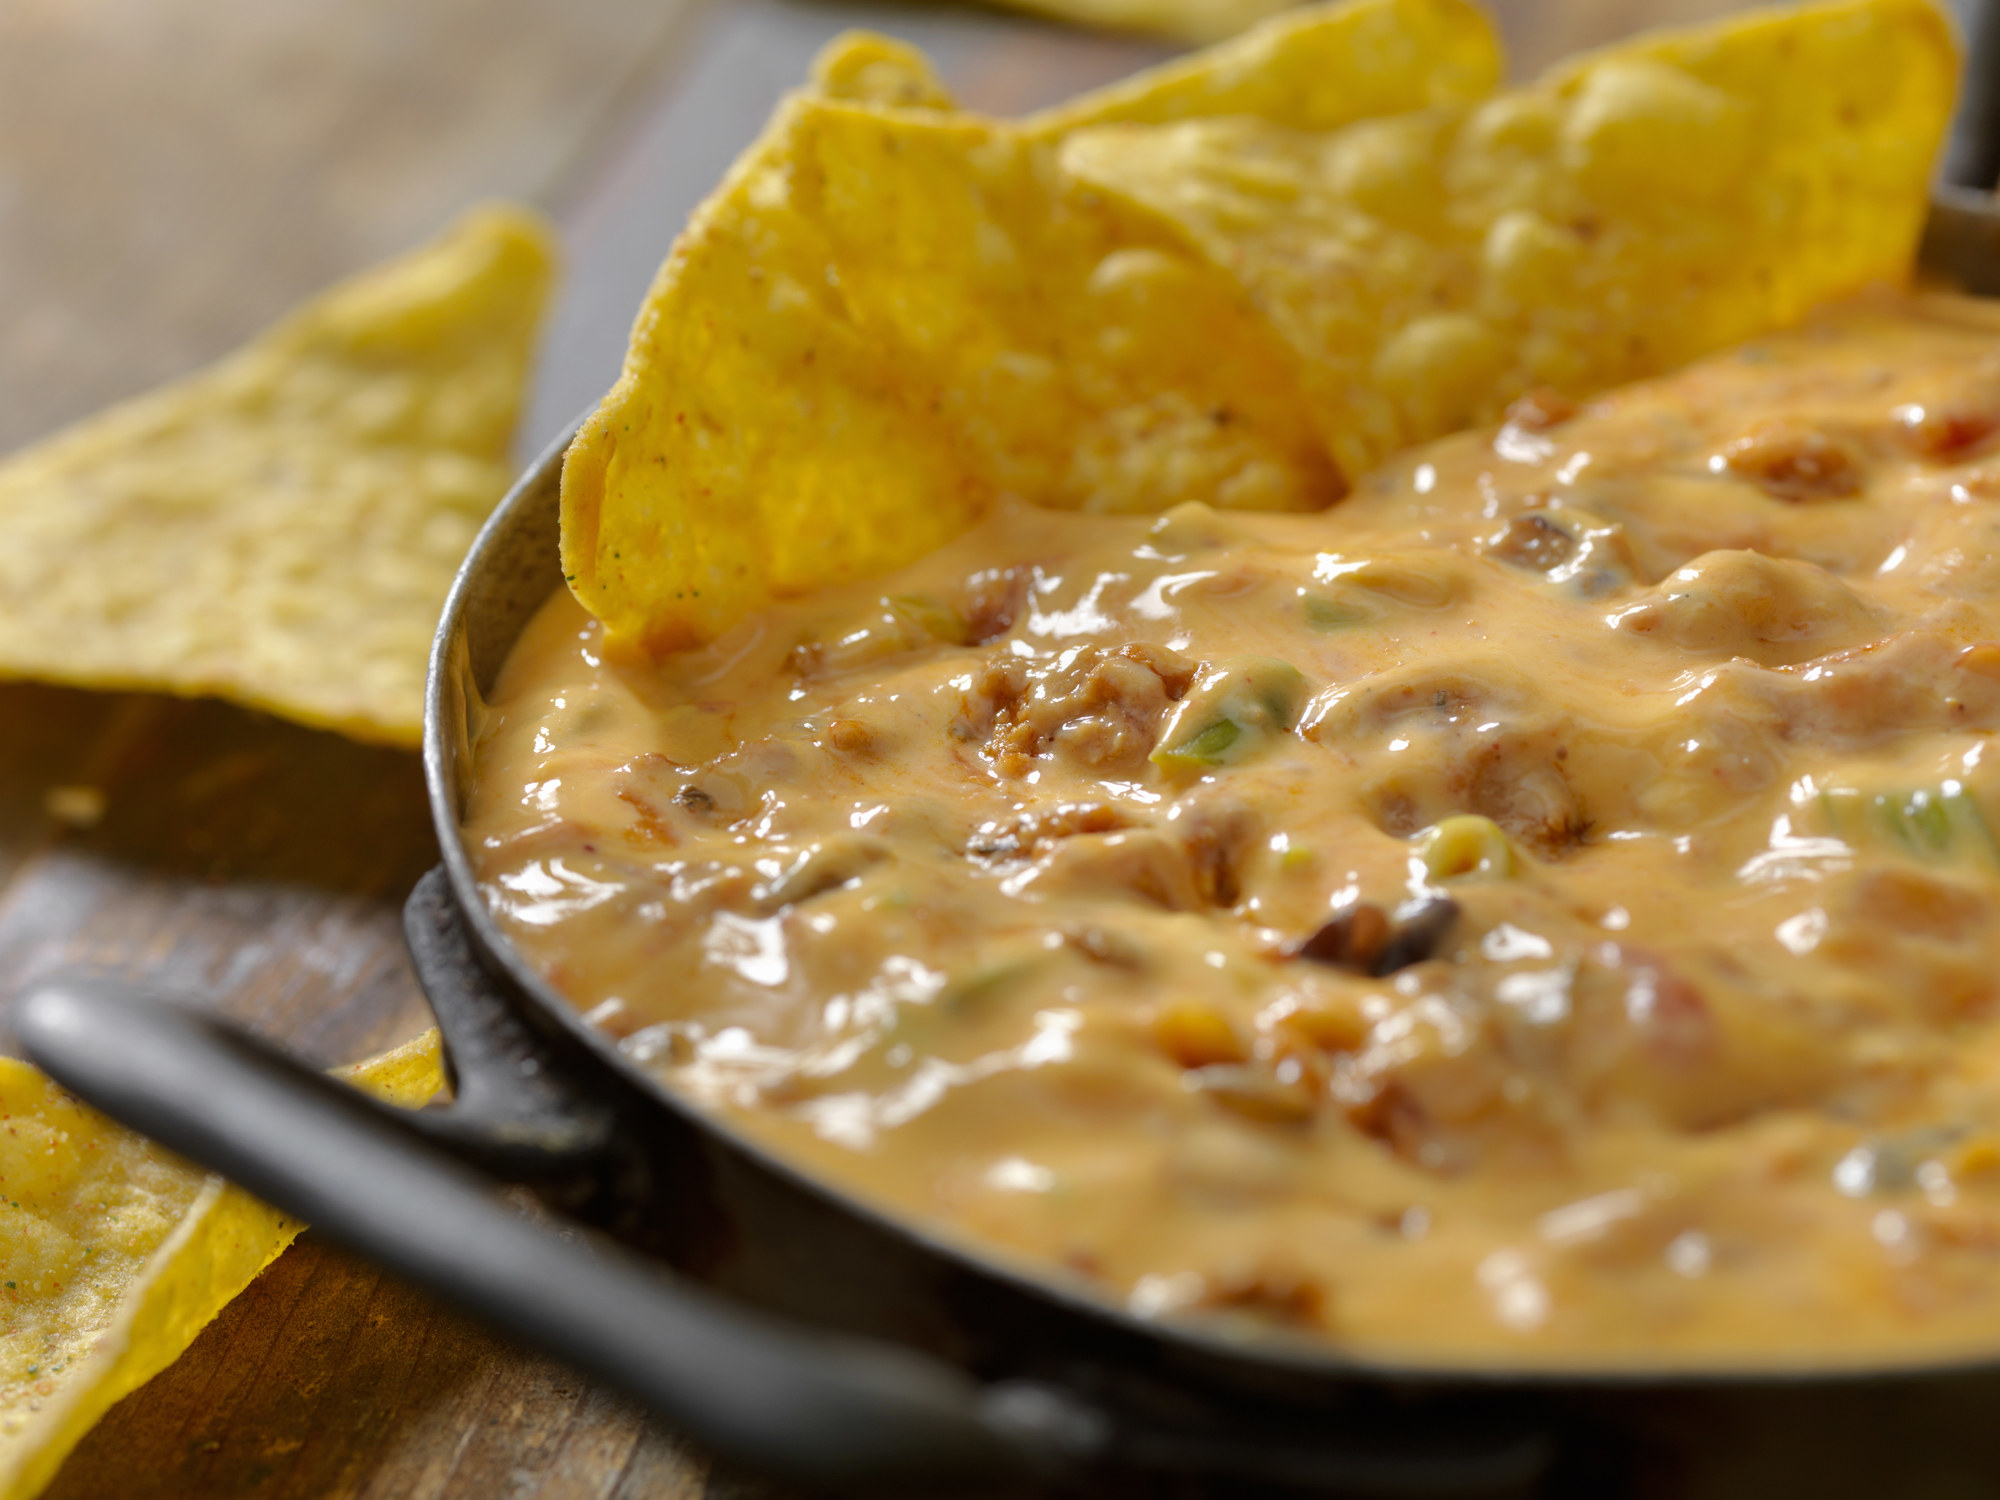 Cheese dip with tortillas chips.